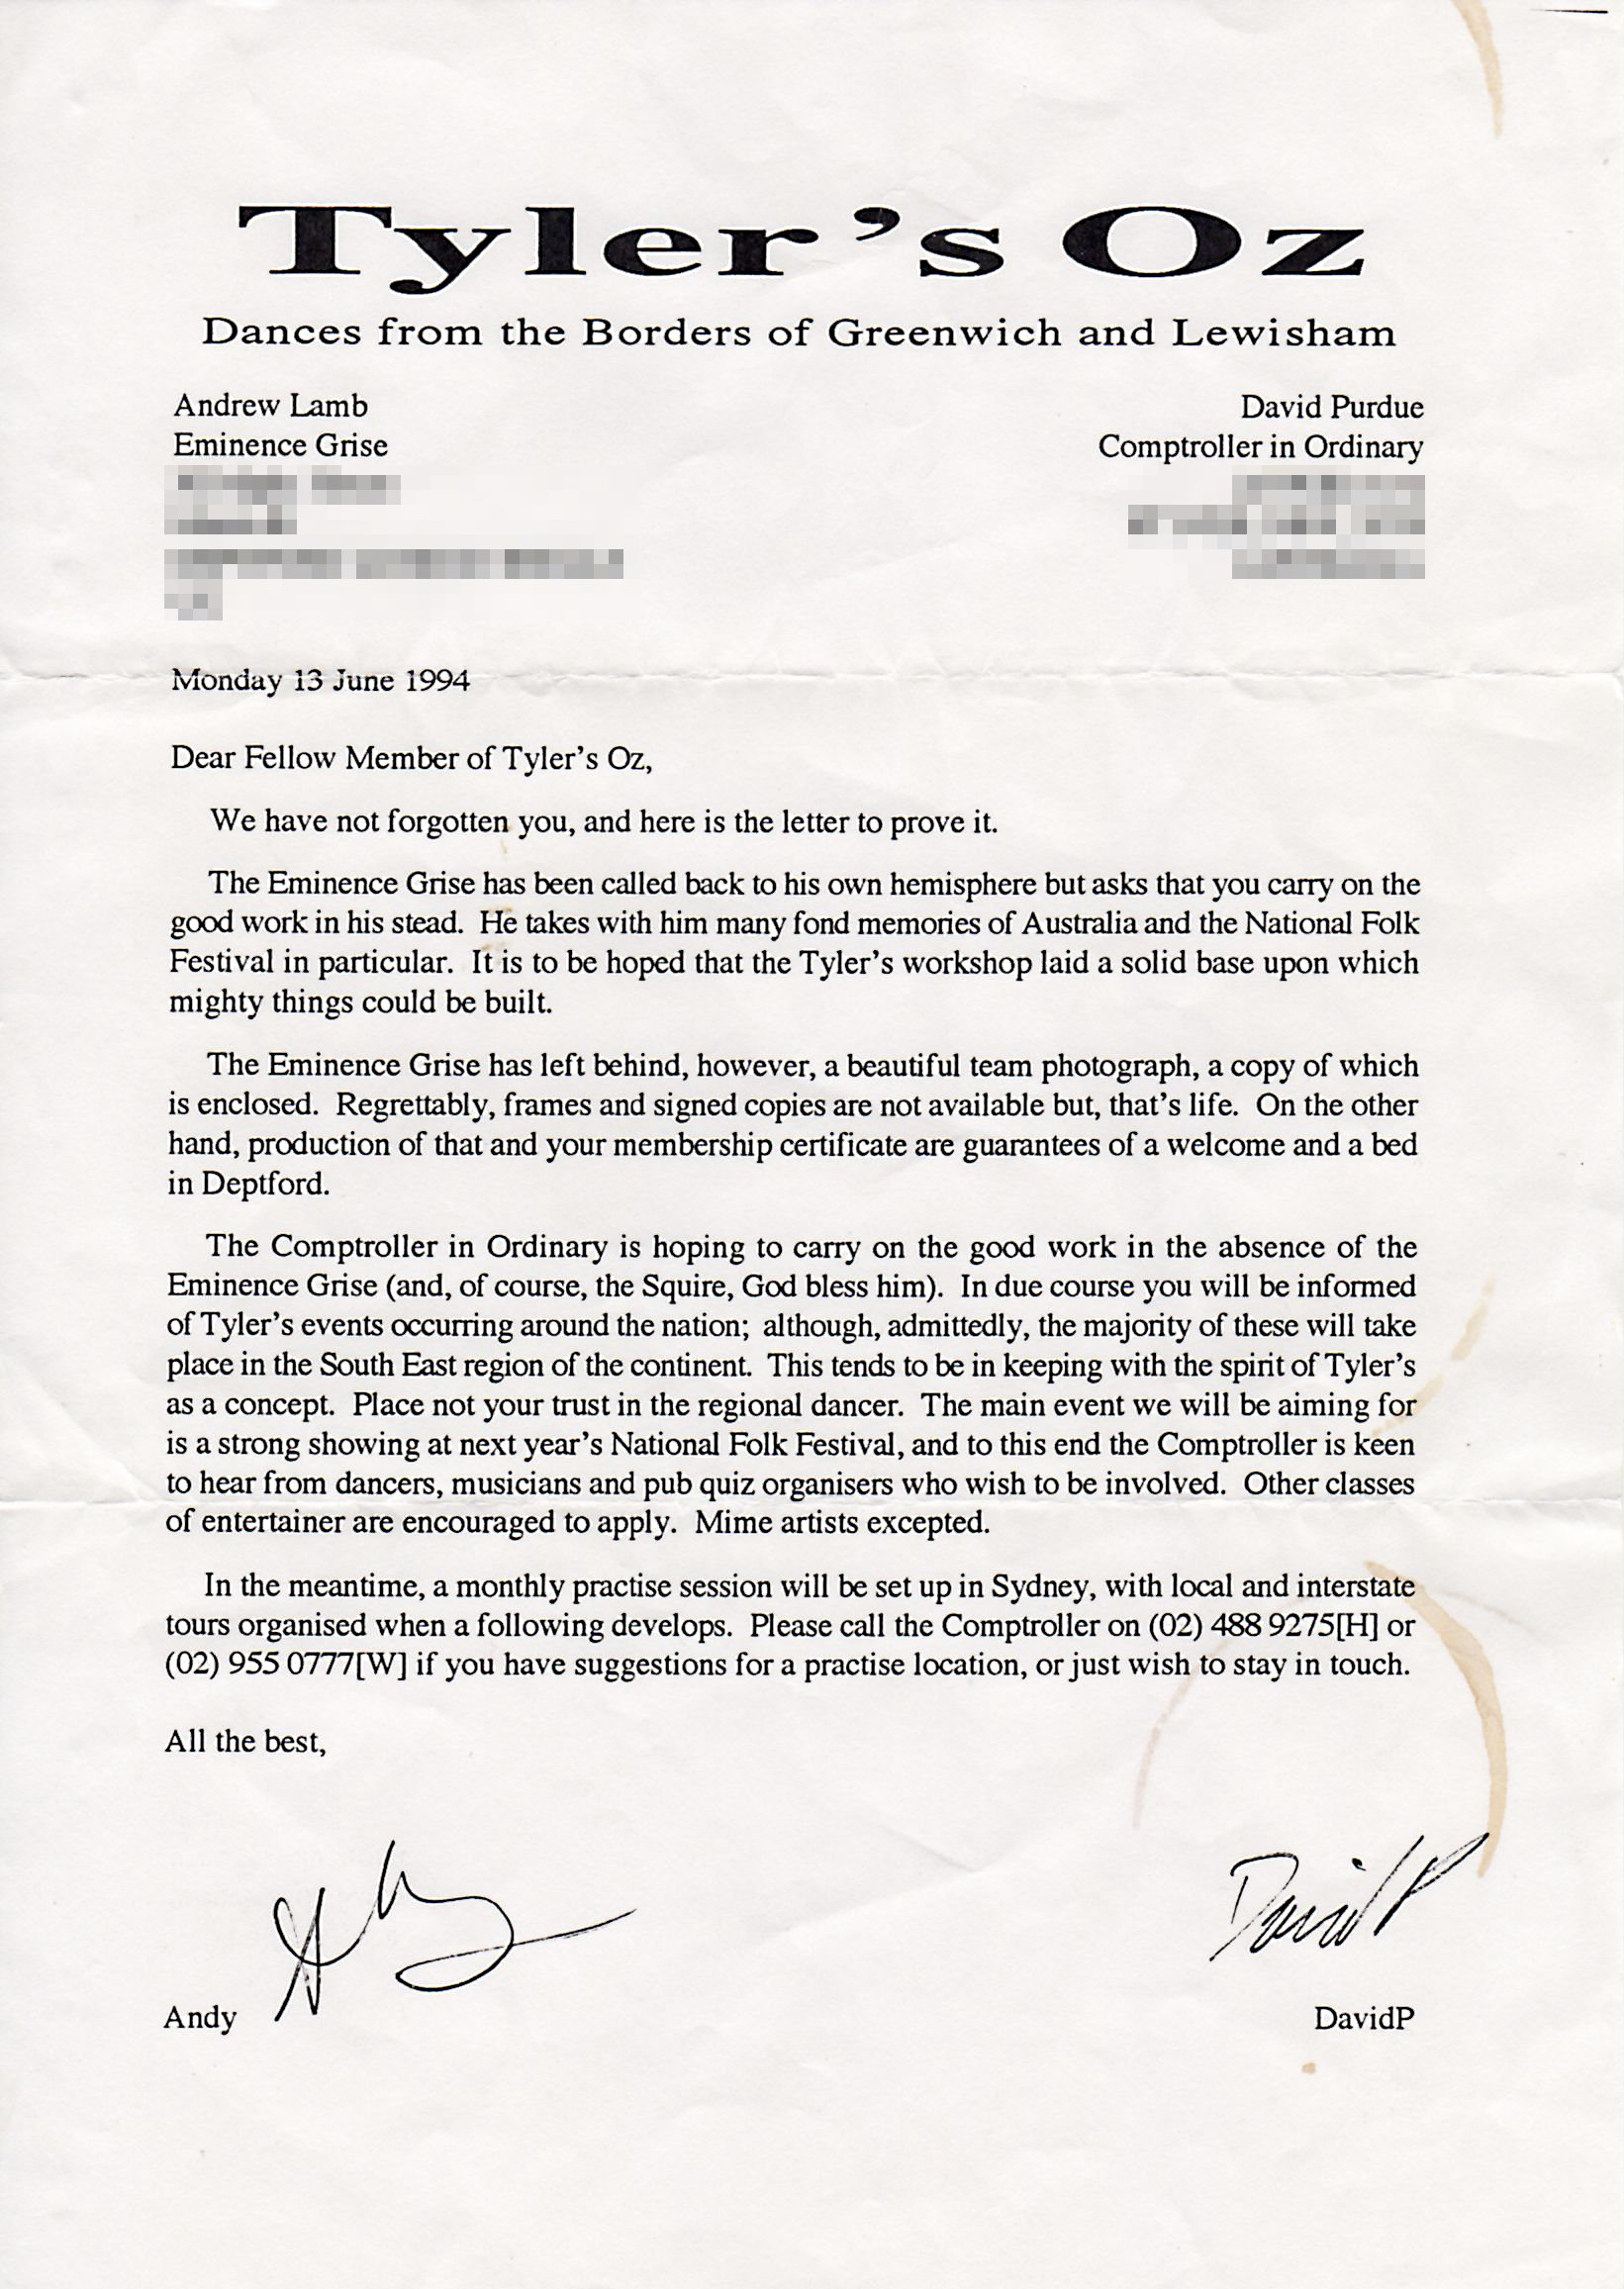 Tyler's Oz Letter to Members, 13 June 1994